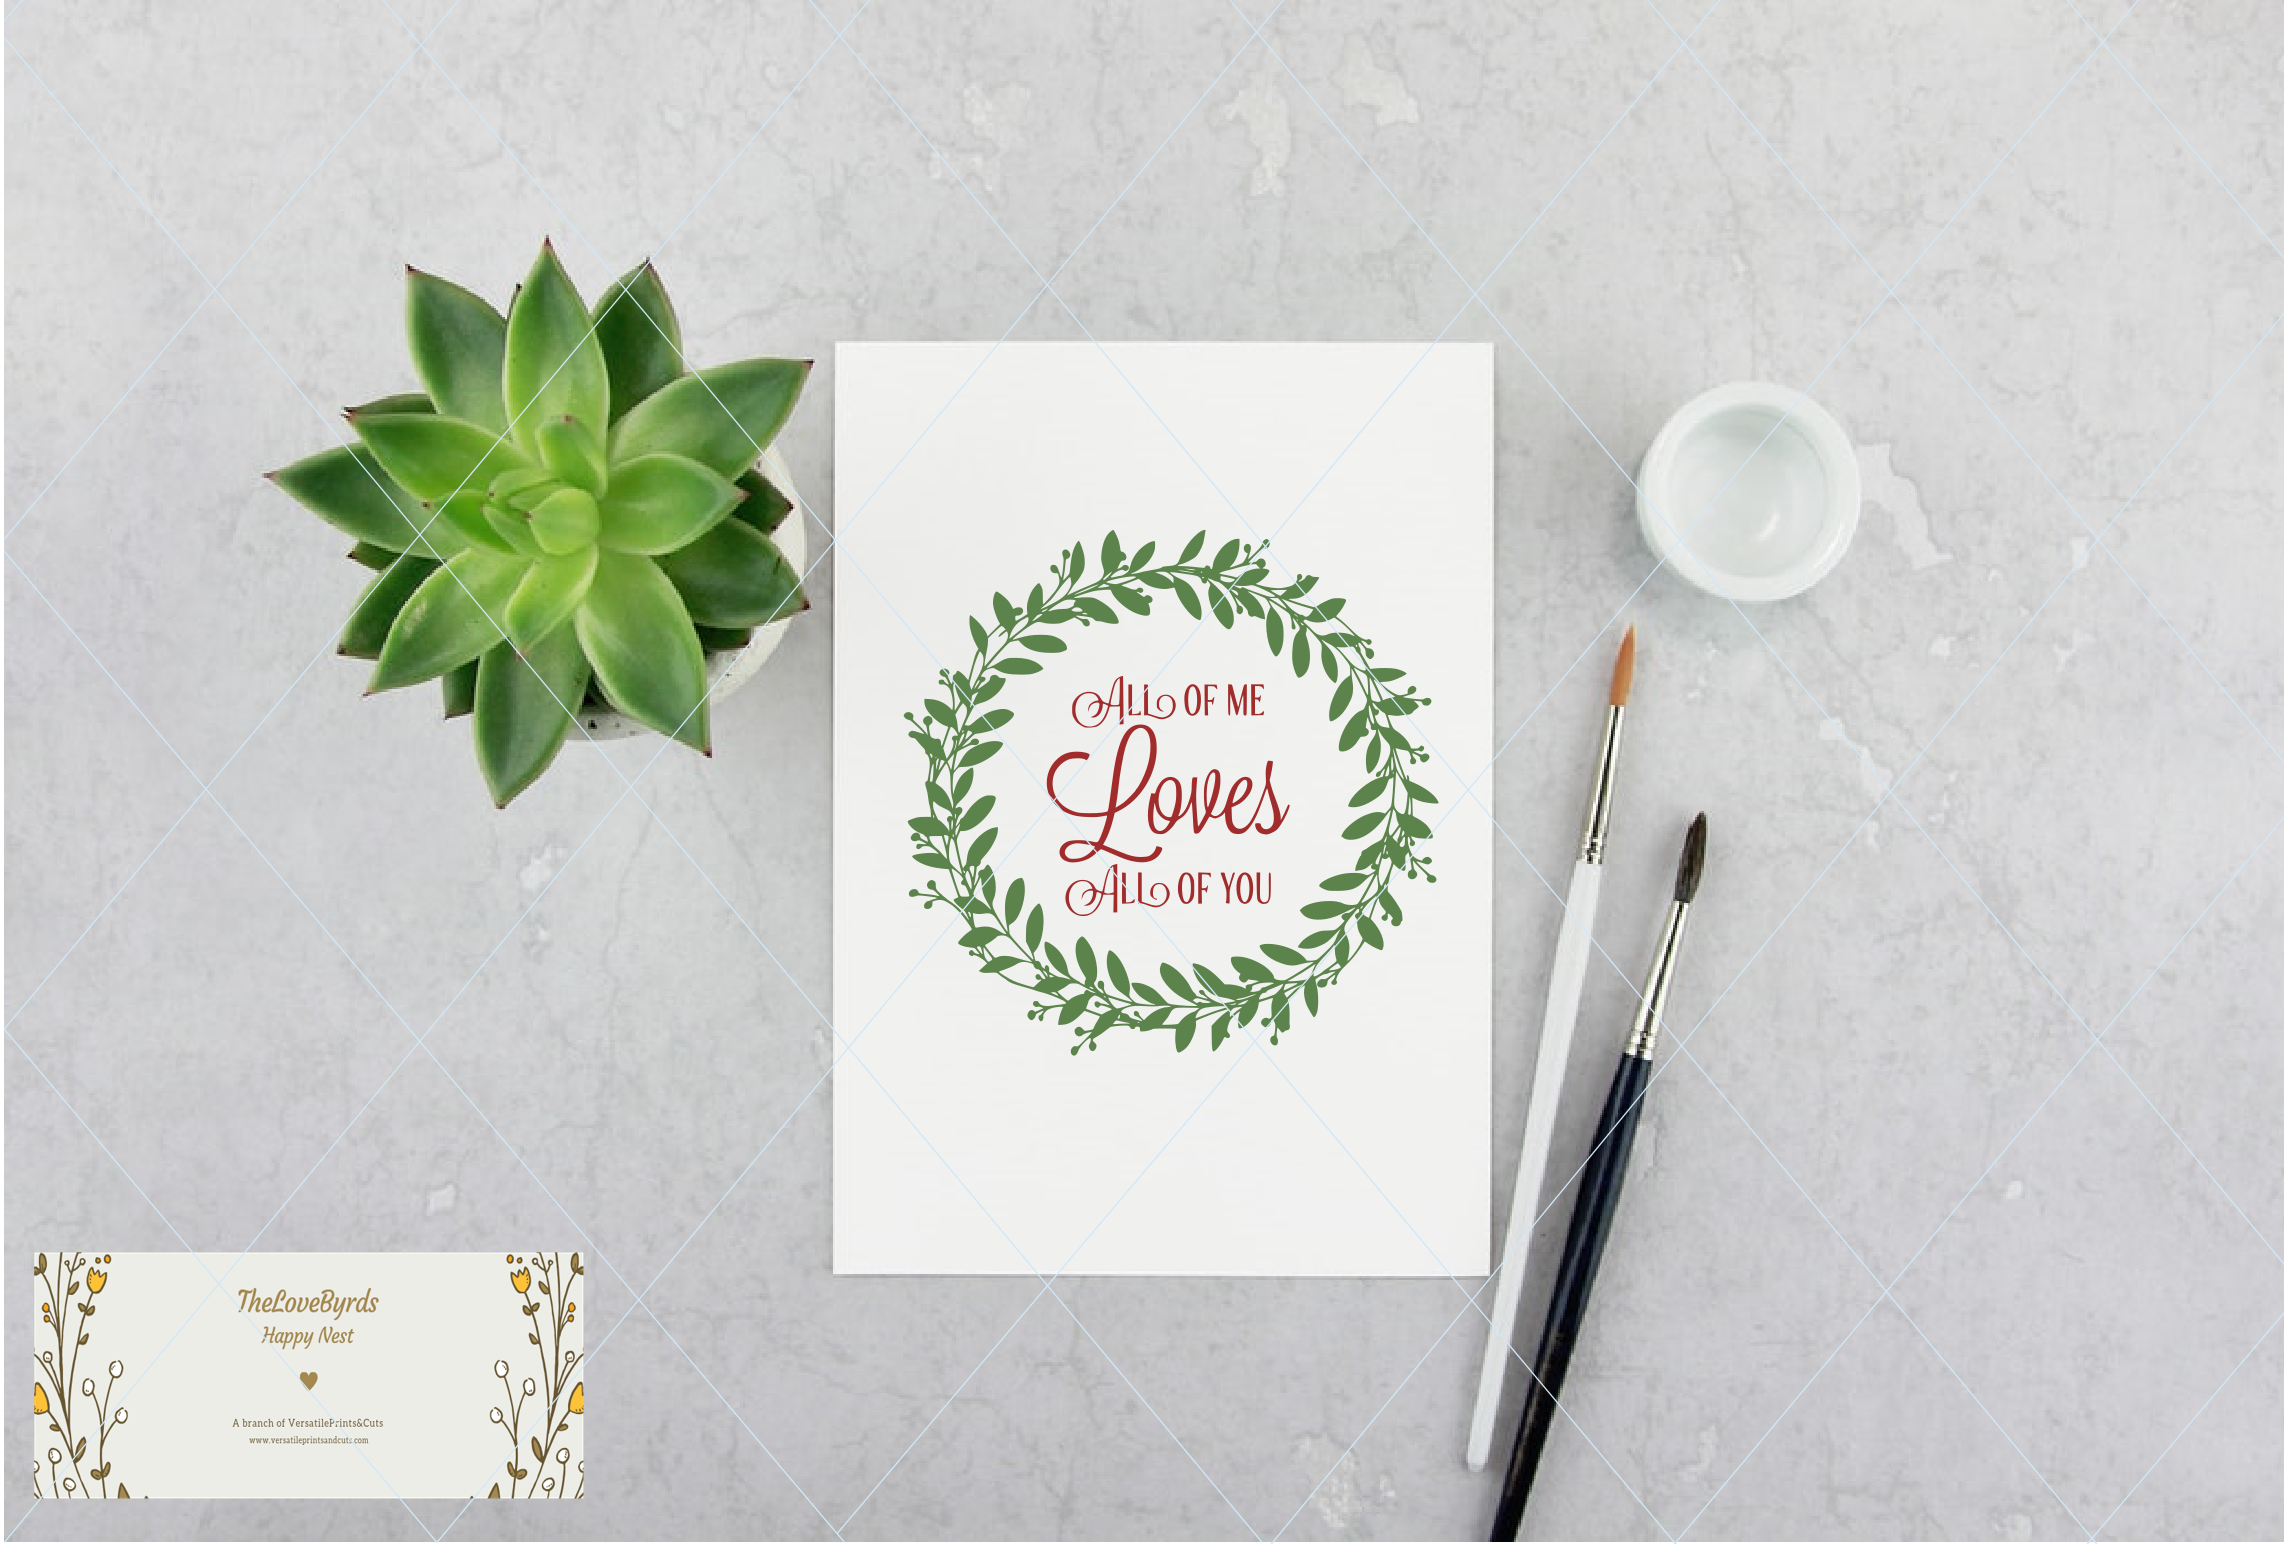 Download Free All Of Me Loves All Of You Svg Cut File Graphic By Thelovebyrds for Cricut Explore, Silhouette and other cutting machines.